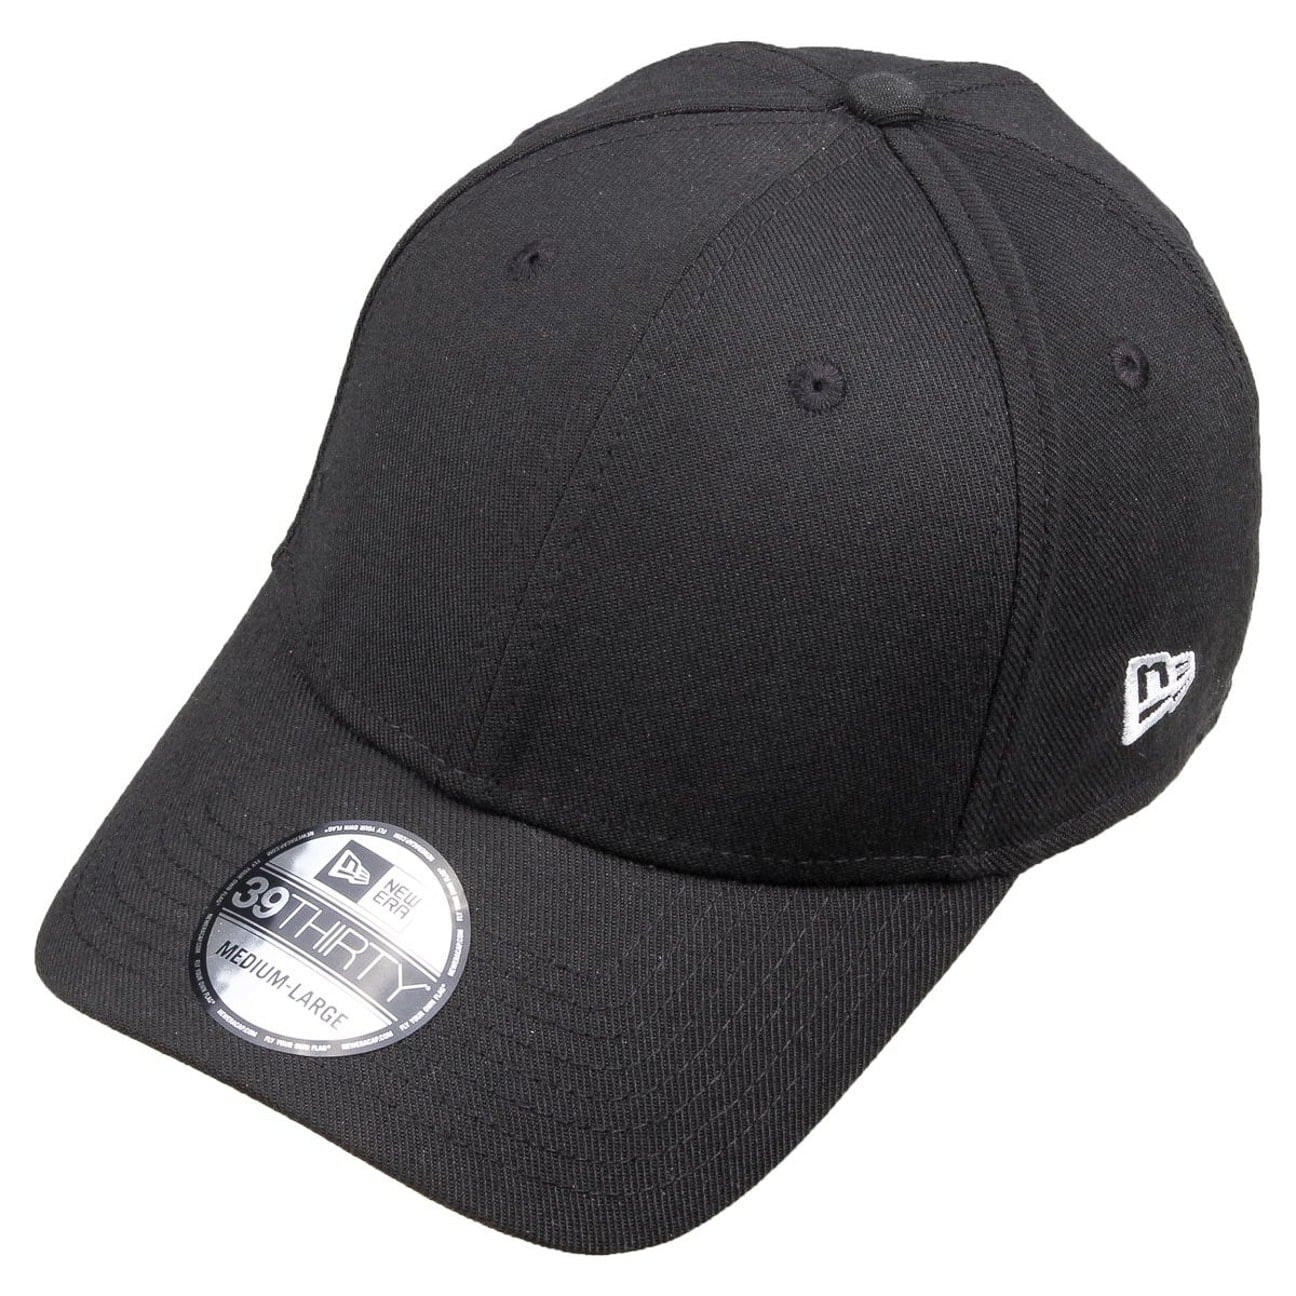 dcb2192e59b ... 39Thirty Blank Baseball Cap by New Era - black 2 ...